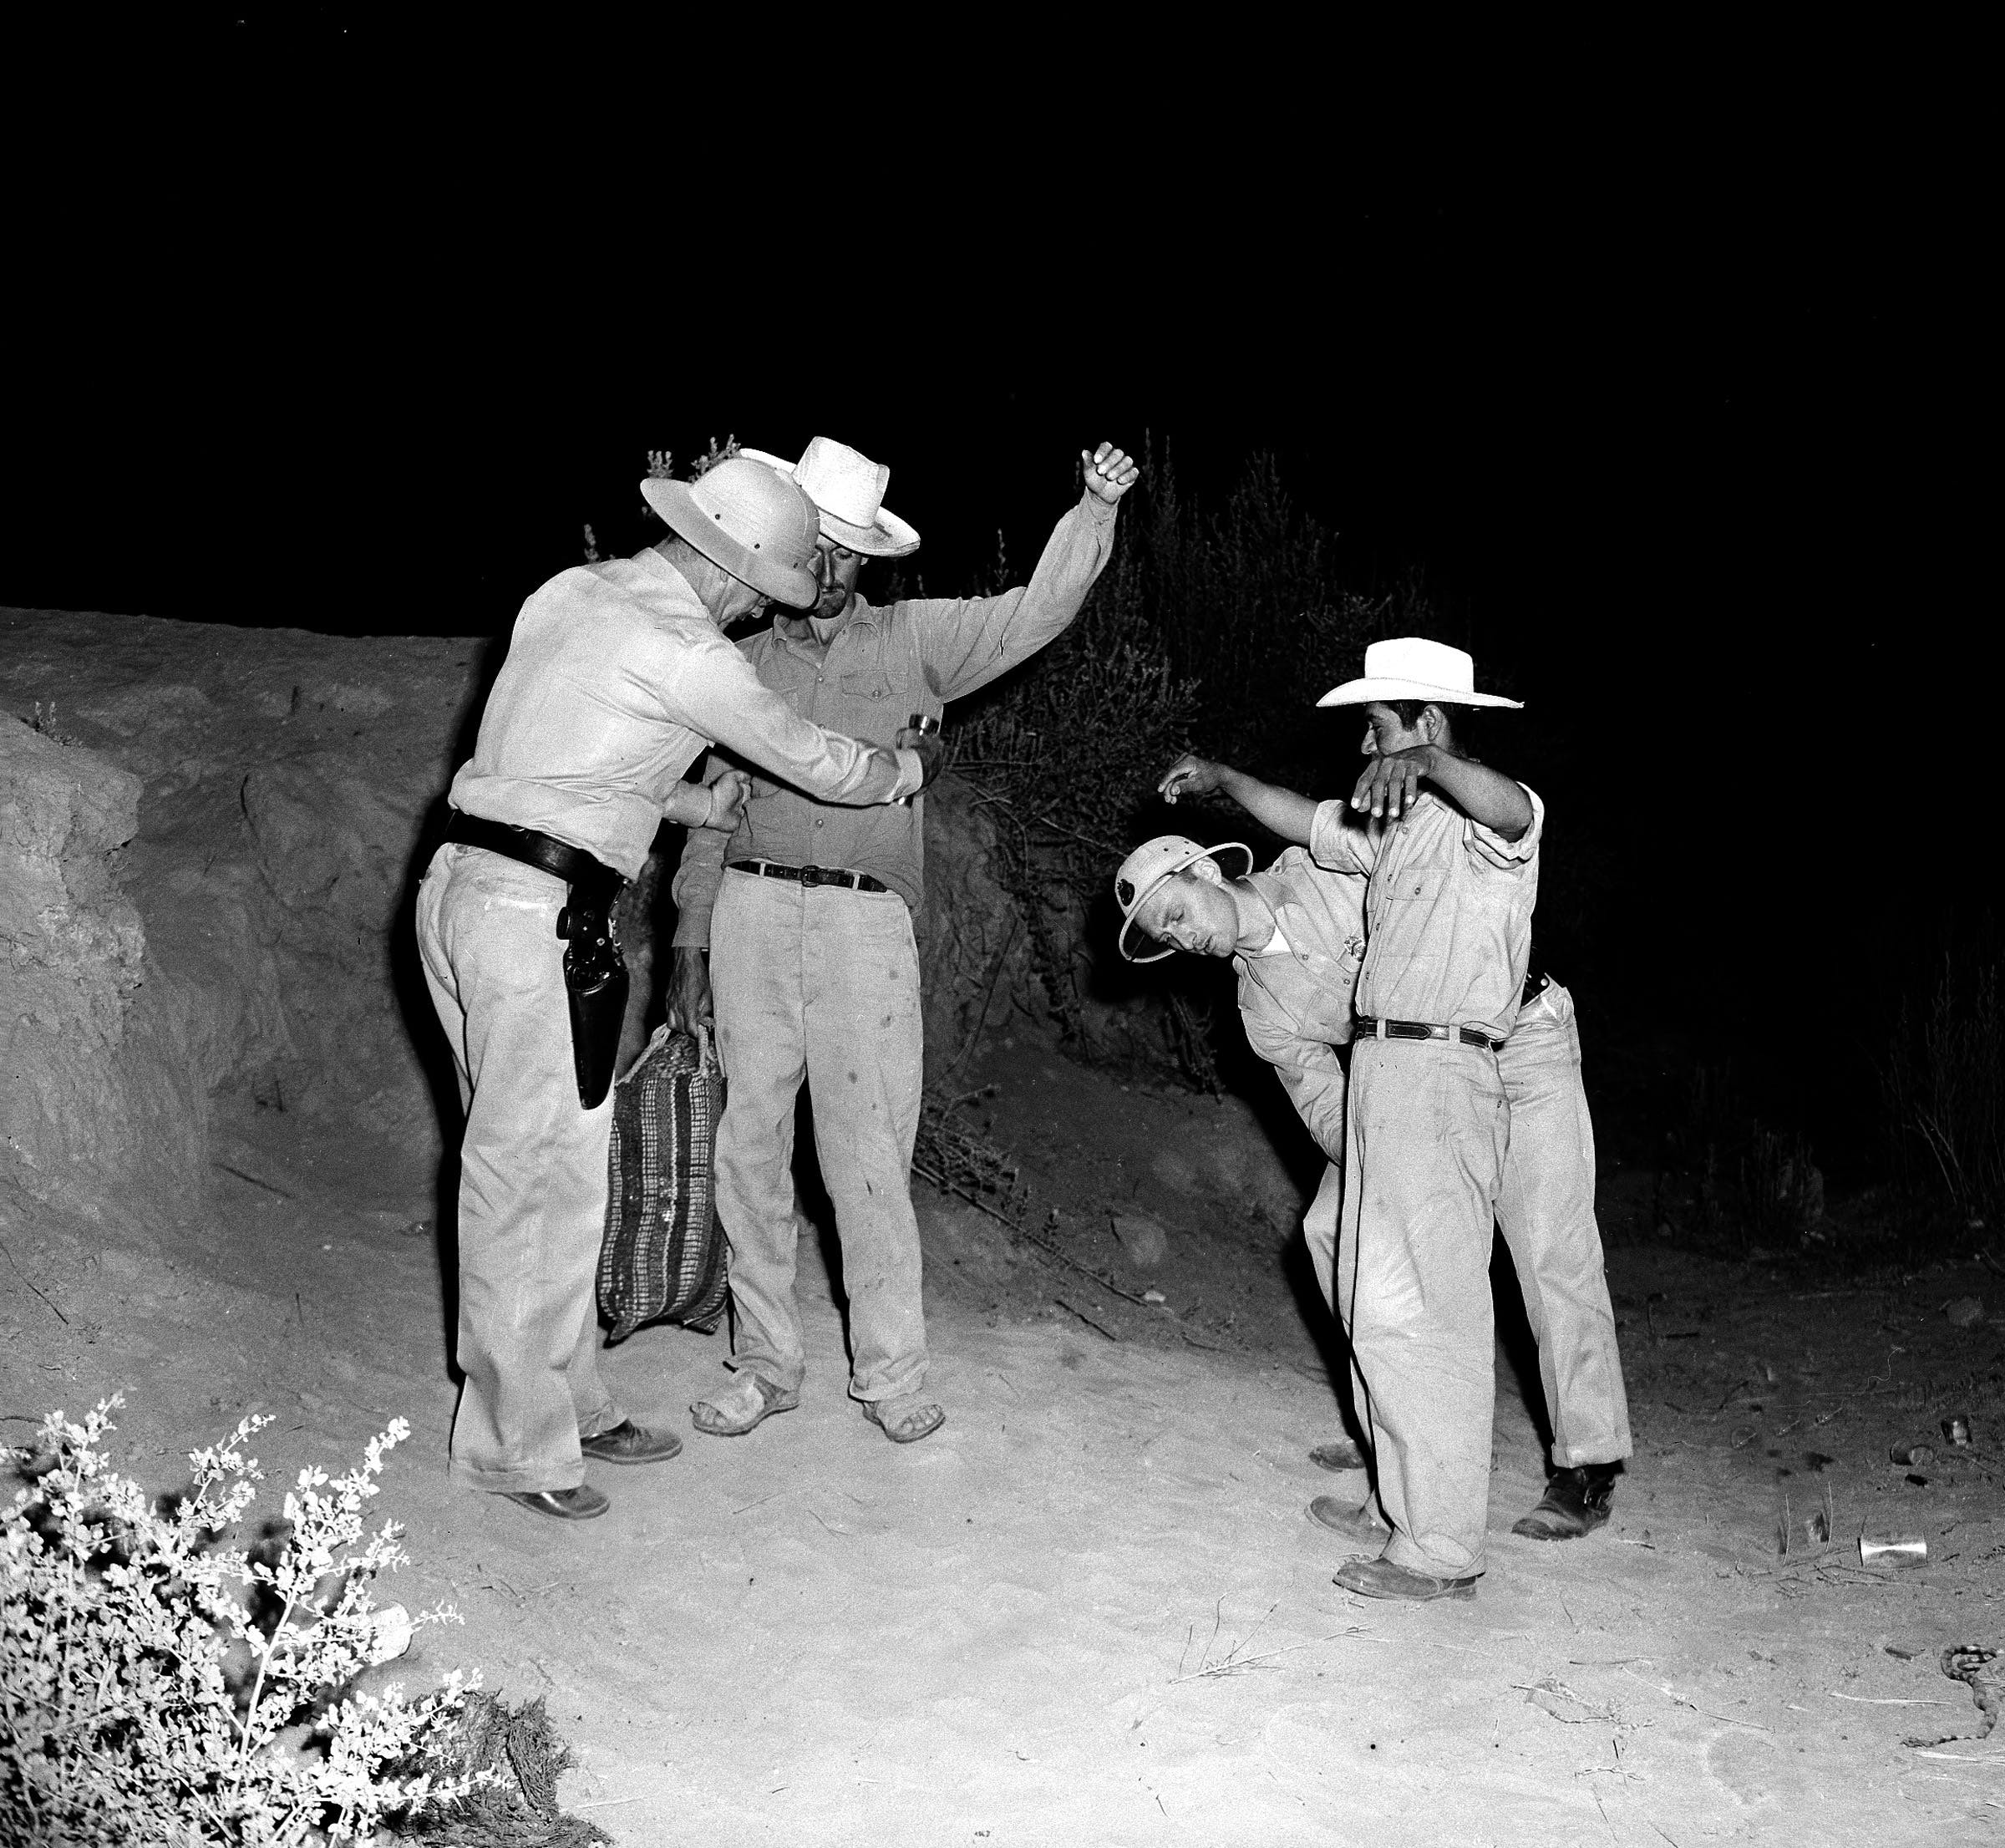 U.S. Border Patrol inspectors Fred H. Voight, left, and Gordon MacDonald, right, both from the El Centro U.S. Border Patrol sector headquarters, are searching two Mexican nationals, Pedro Vidal, with bag, and Canuto Garcia, right, shortly after the two men illegally crossed the border from Mexico, west of Calexico, Calif., August 11, 1951. Thousands of Mexican laborers are trying to cross in this area into the United States, where they attempt to work on the farms of the nearby Imperial Valley. (AP Photo)